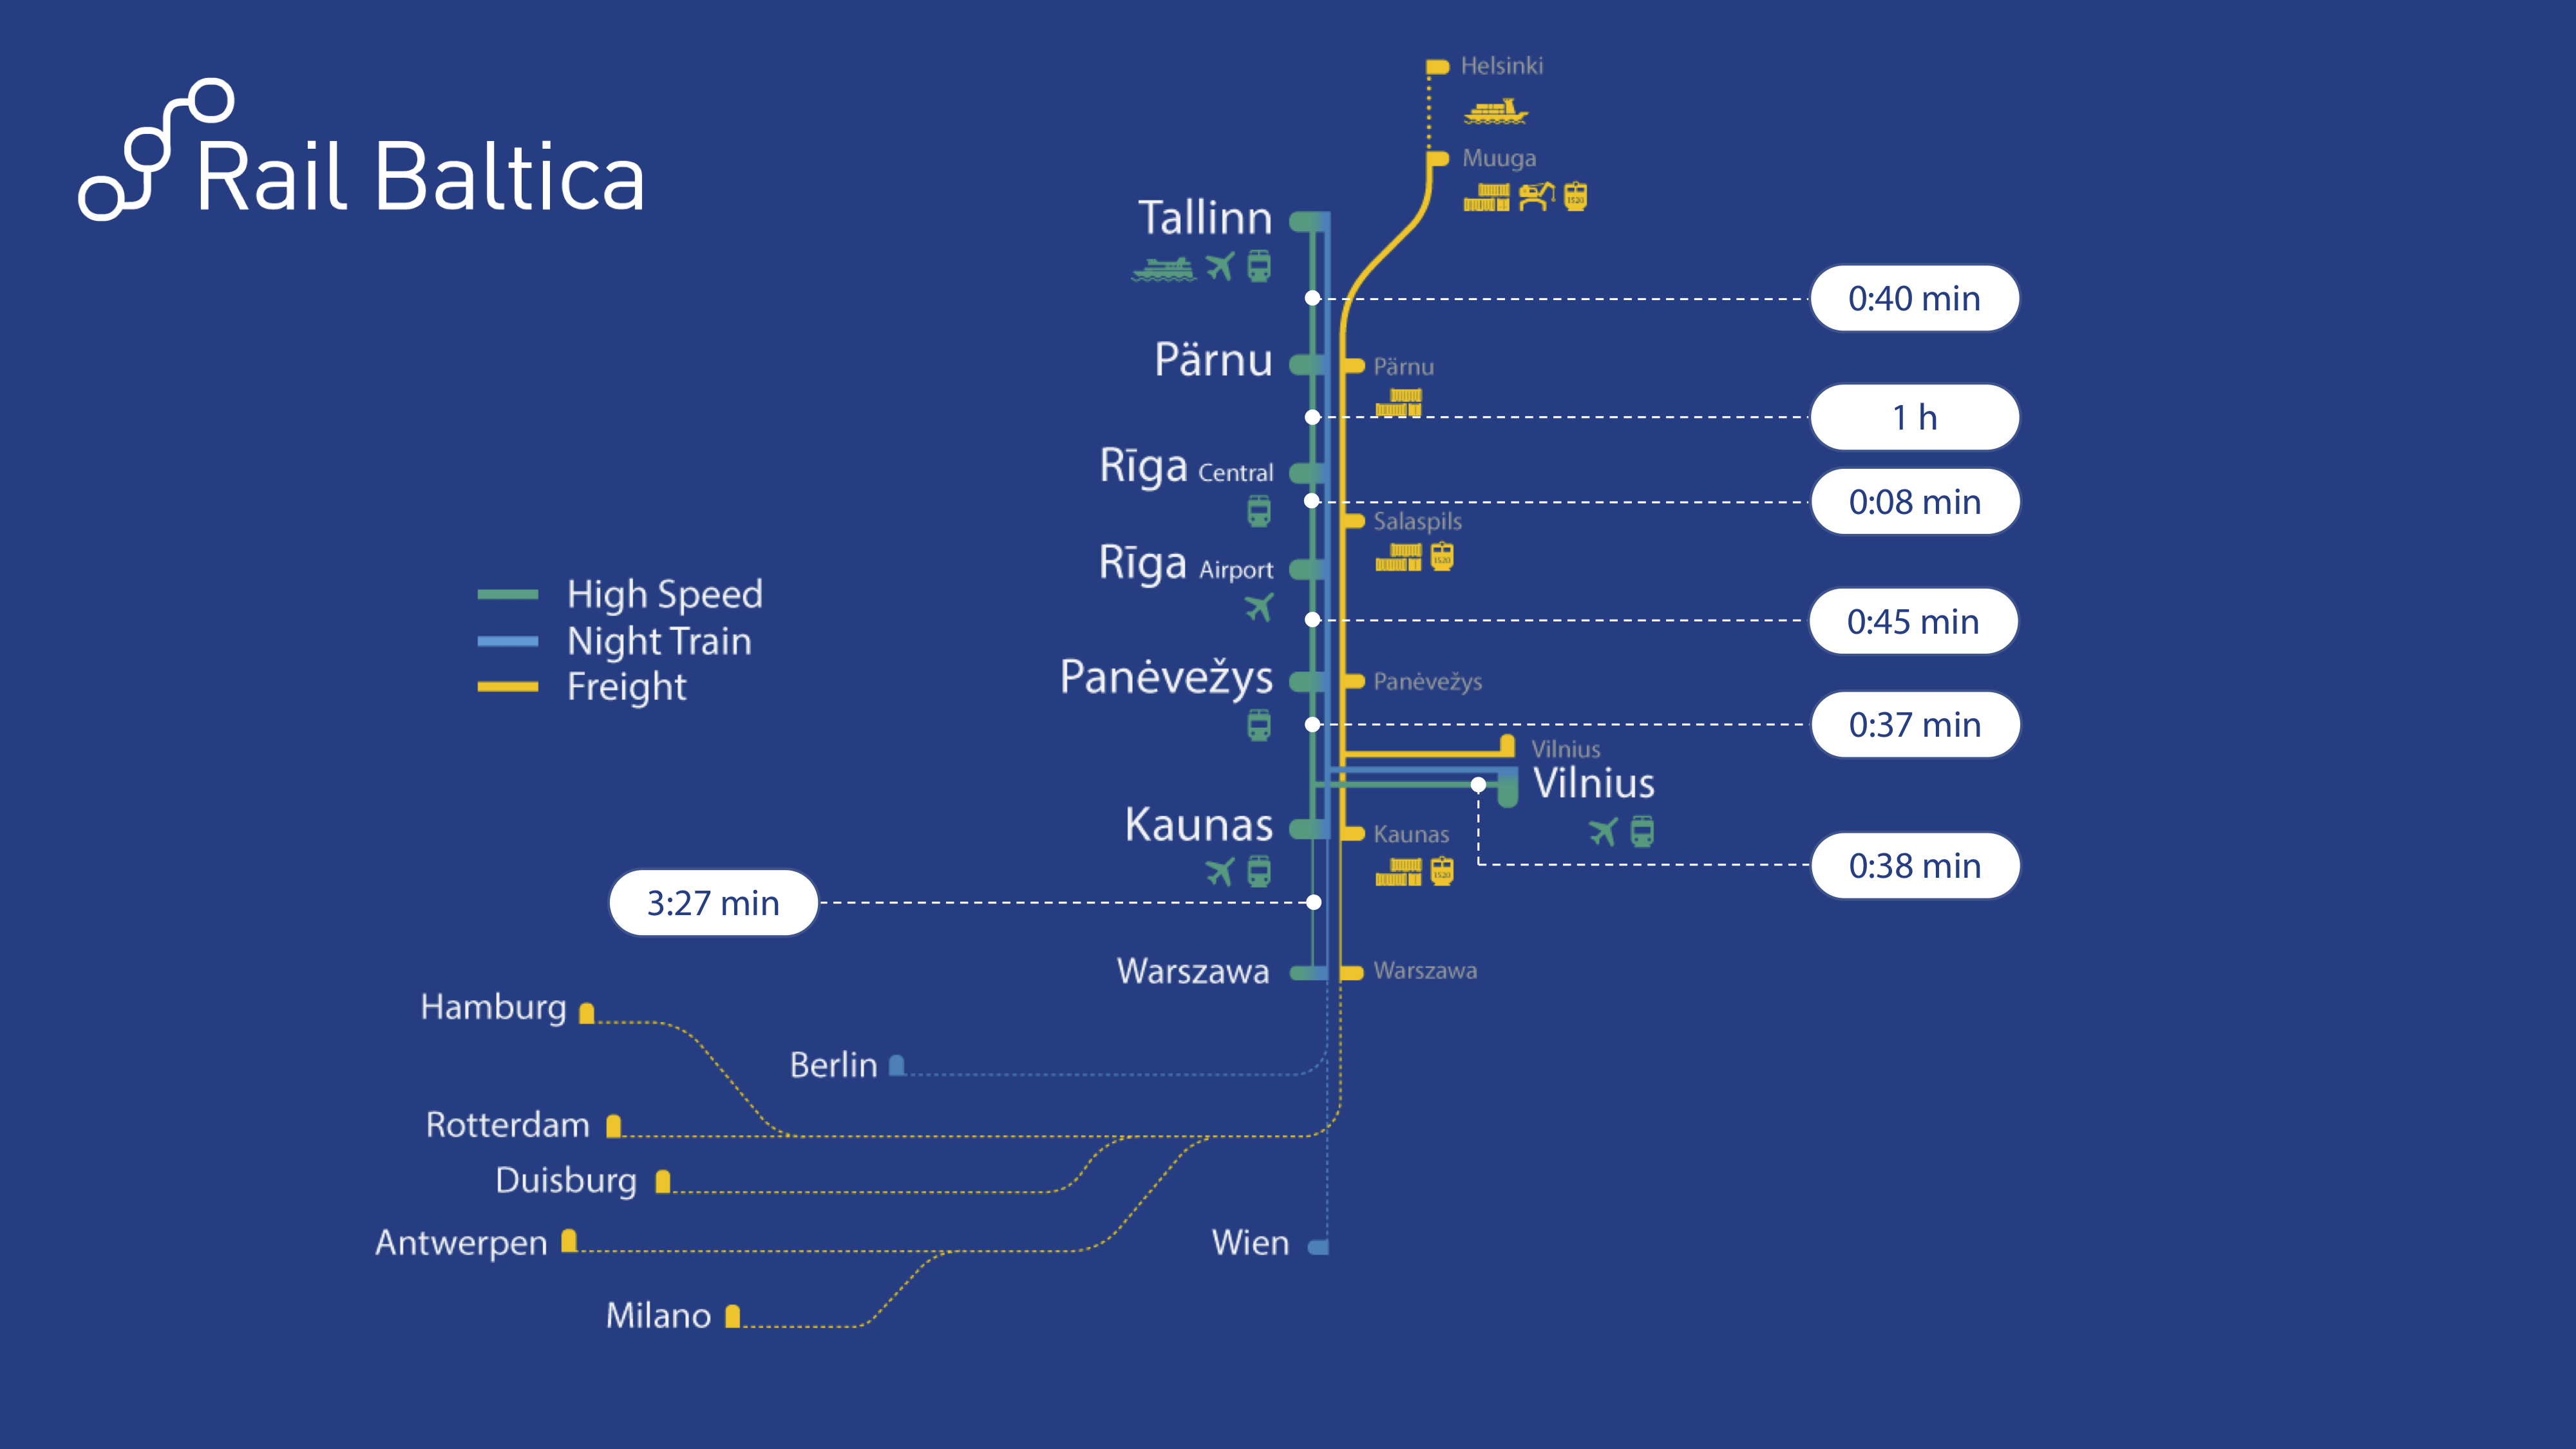 Rail Baltica stations and timeline